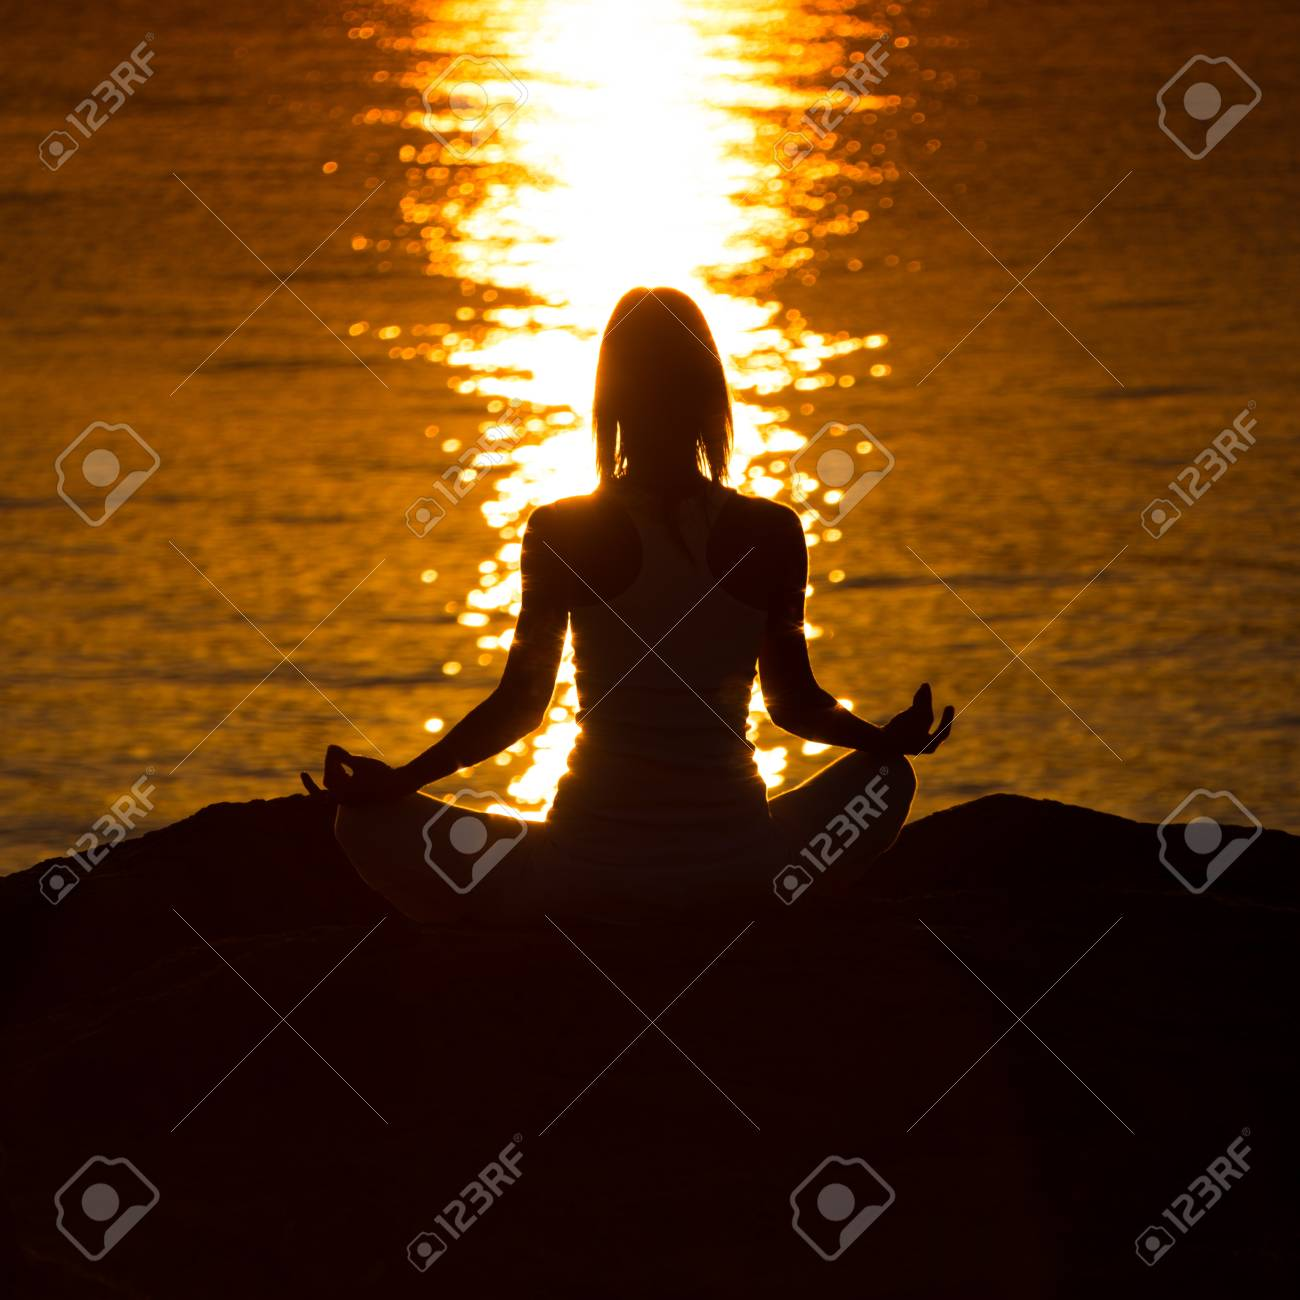 Silhouette of a woman doing yoga on the beach at sunset Stock Photo - 22101967